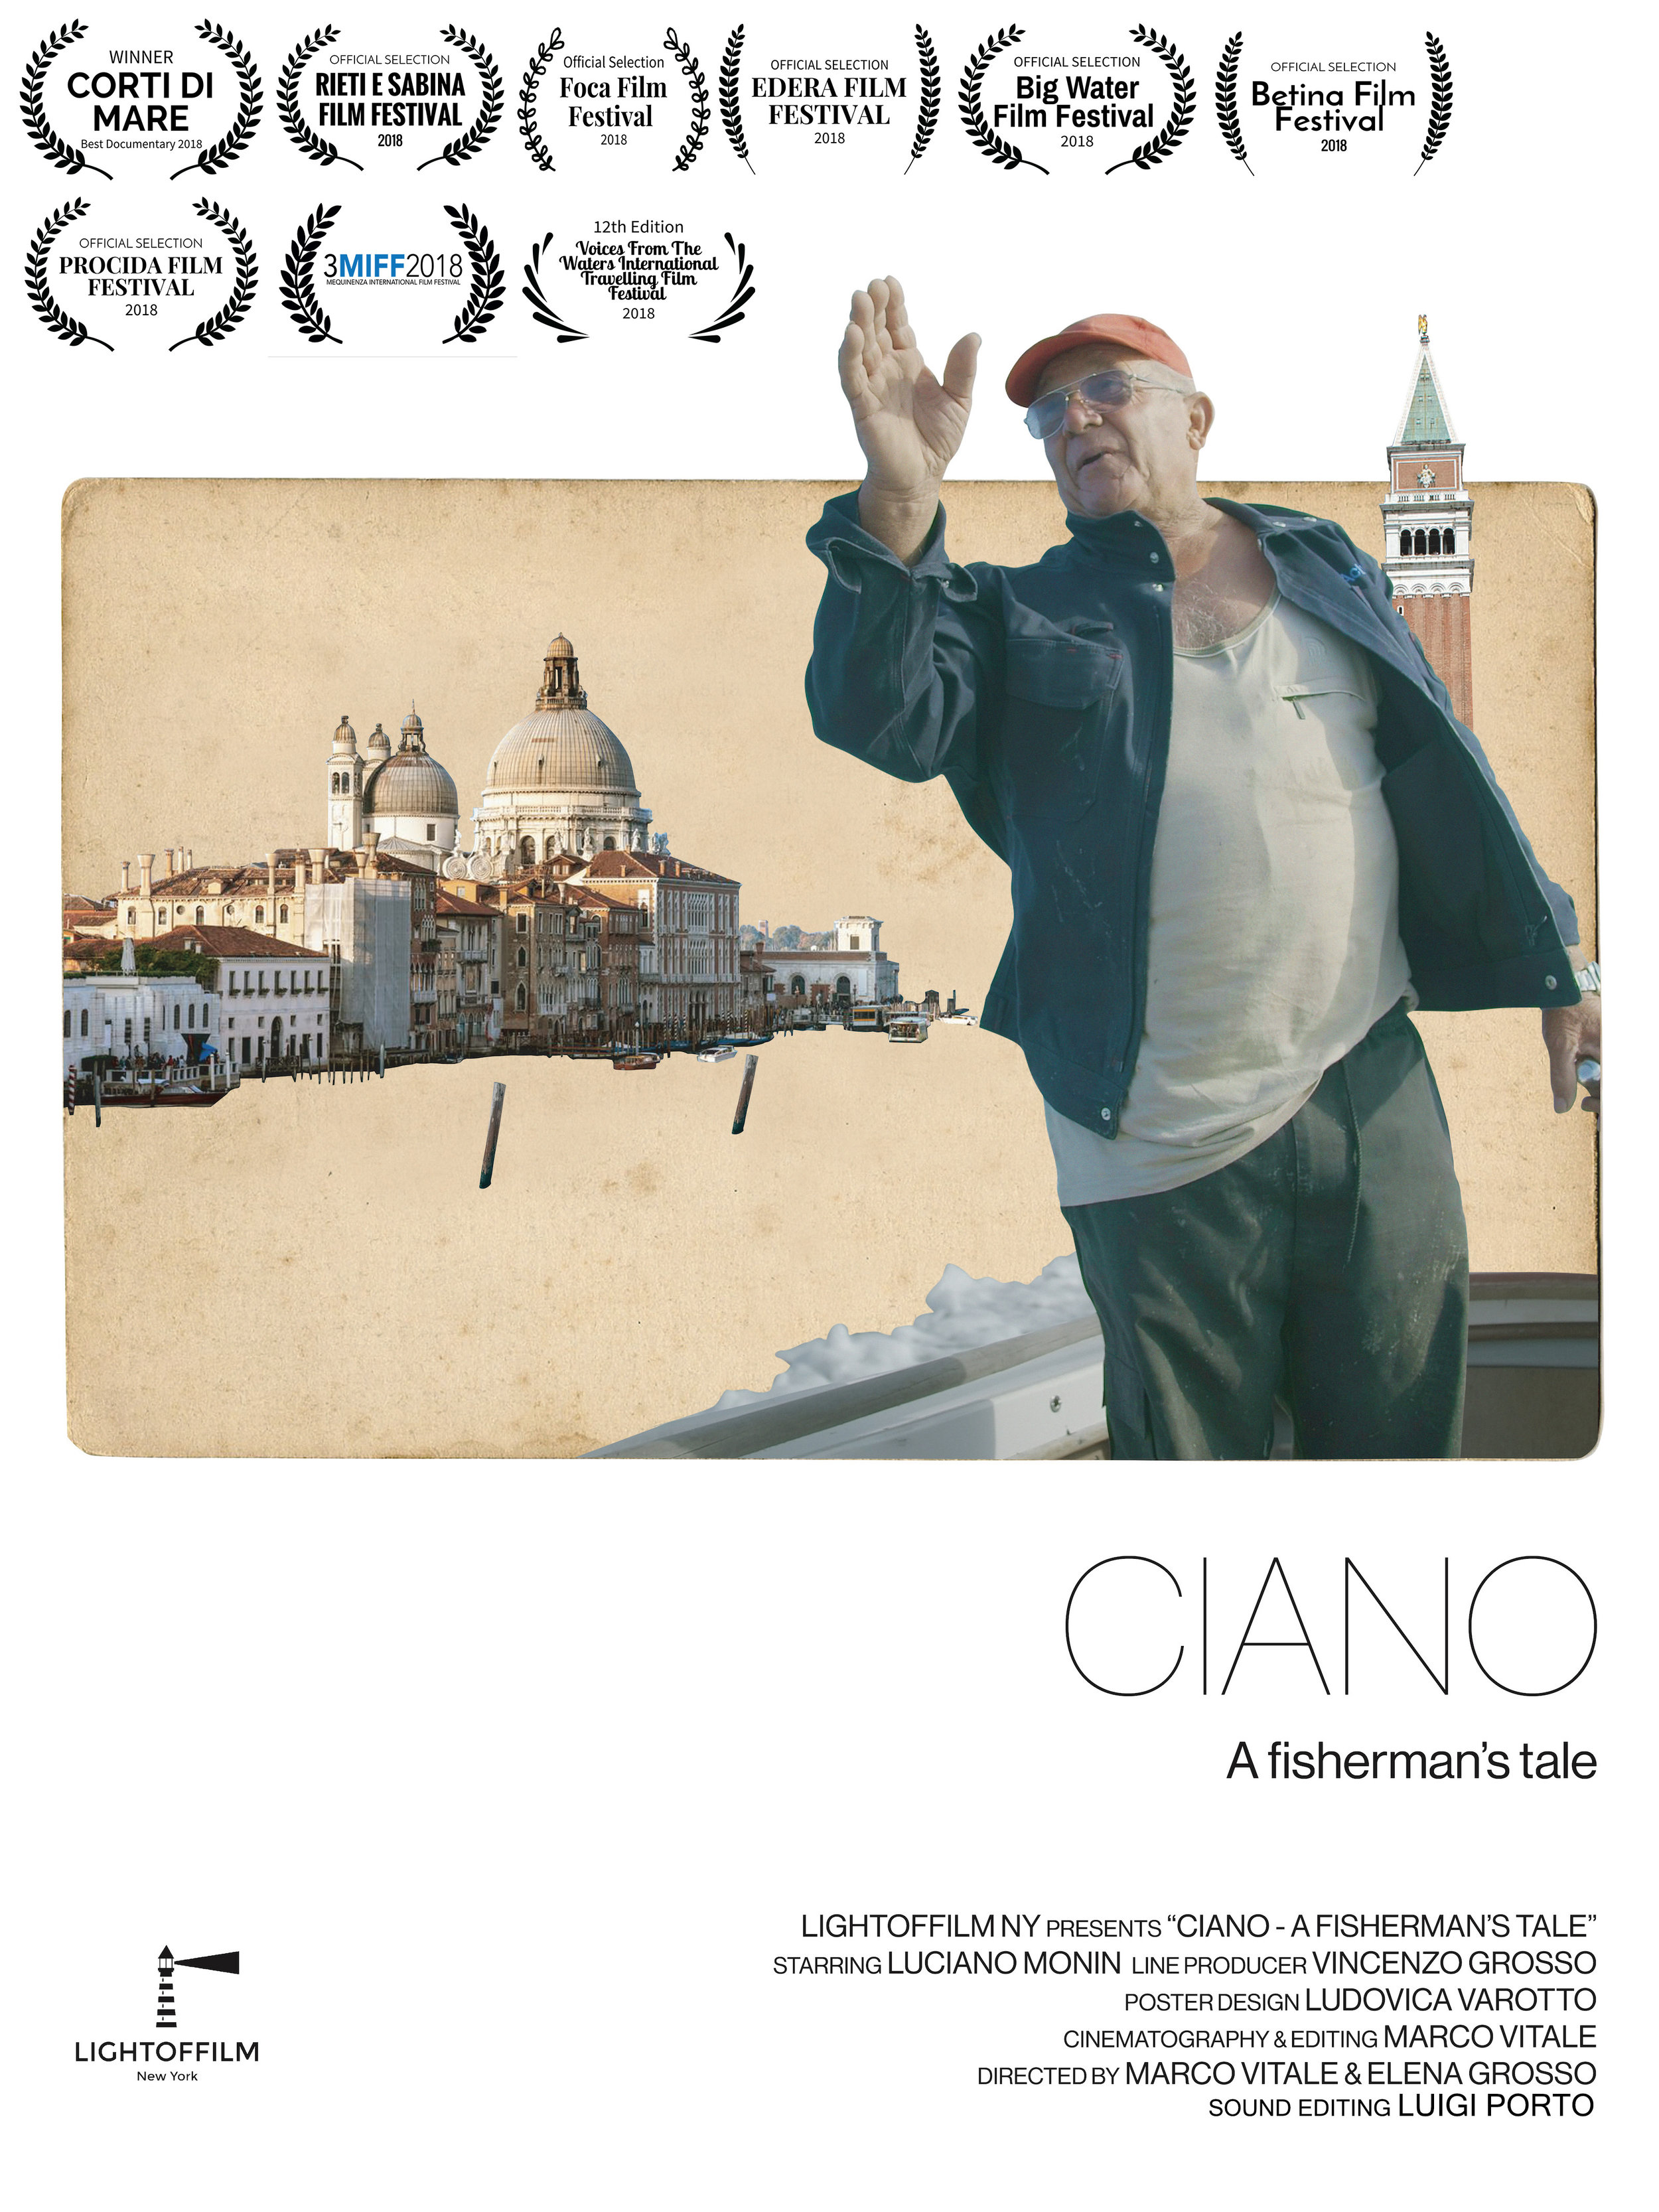 CIANO, A FISHERMAN'S TALE - It's the story of a simple life, lived by the water, lived for the water. Ciano is a fisherman who spent his entire life in Burano, an island near Venice, fishing. This short story follows the reality of a dying craft in a changing world.